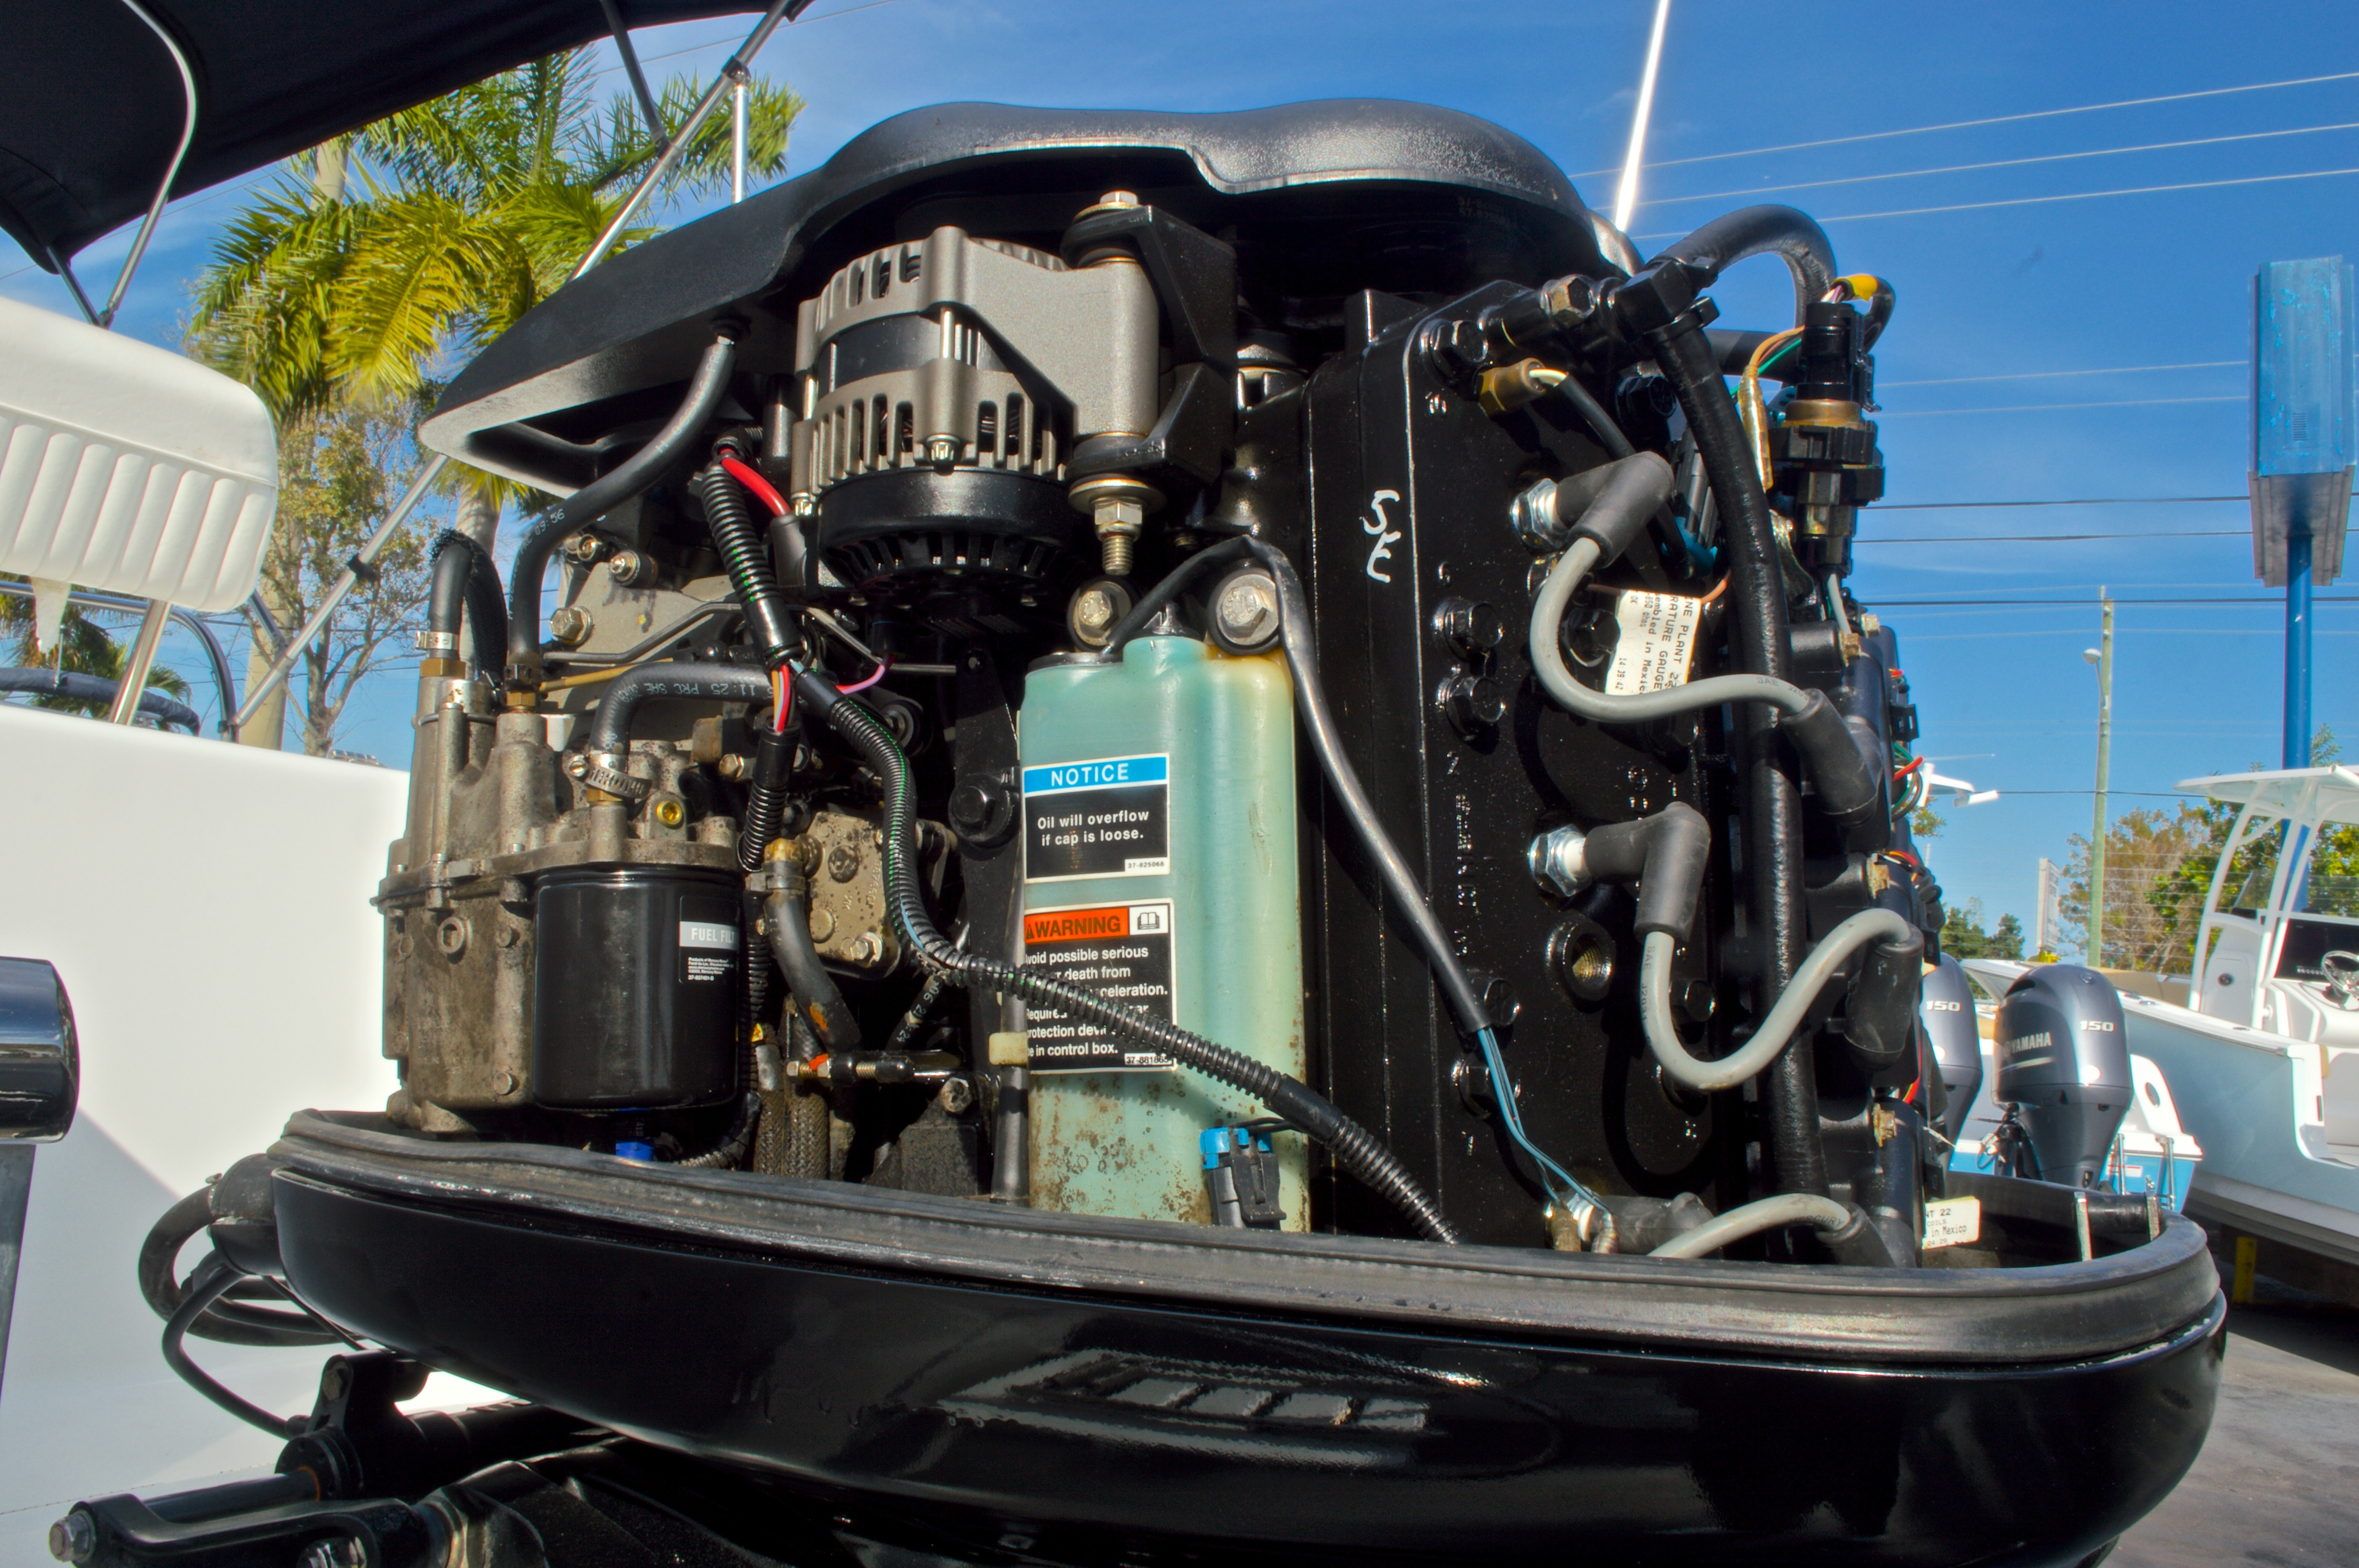 Thumbnail 9 for Used 2007 Sea Pro 186 Center Console boat for sale in West Palm Beach, FL